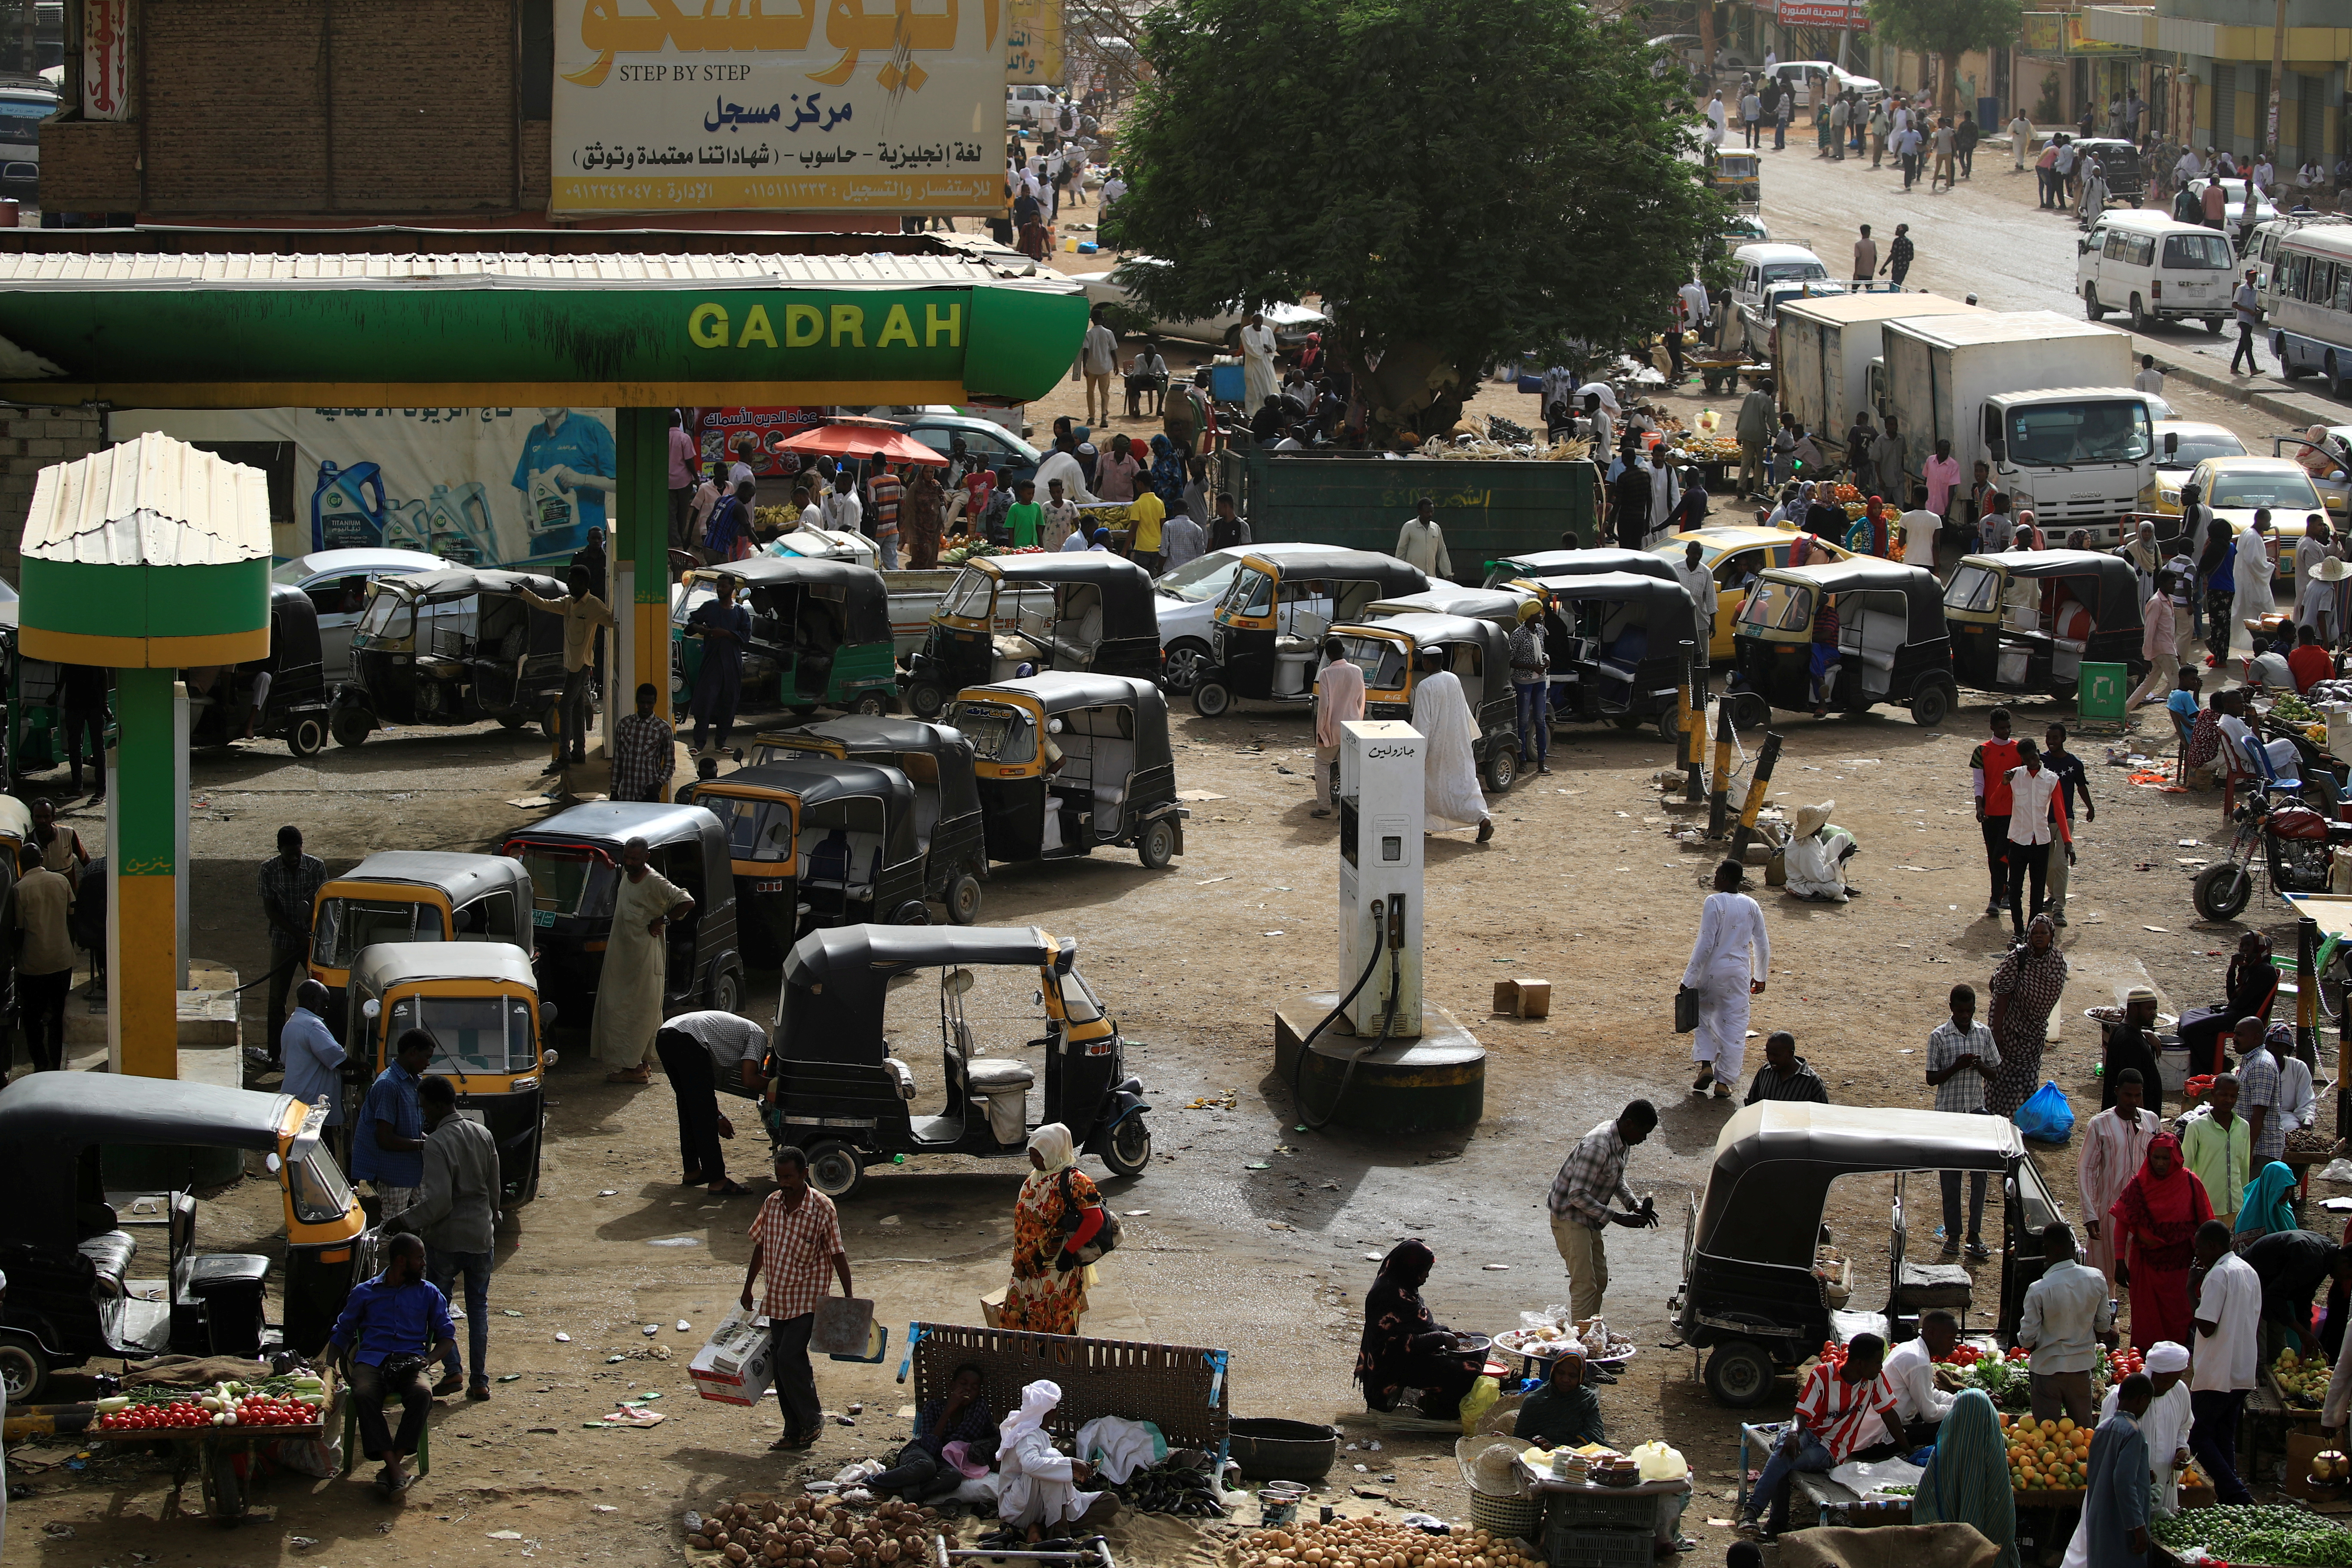 Vehicles line up for gasoline at a gas station in Khartoum, Sudan, May 4, 2019. REUTERS/Umit Bektas